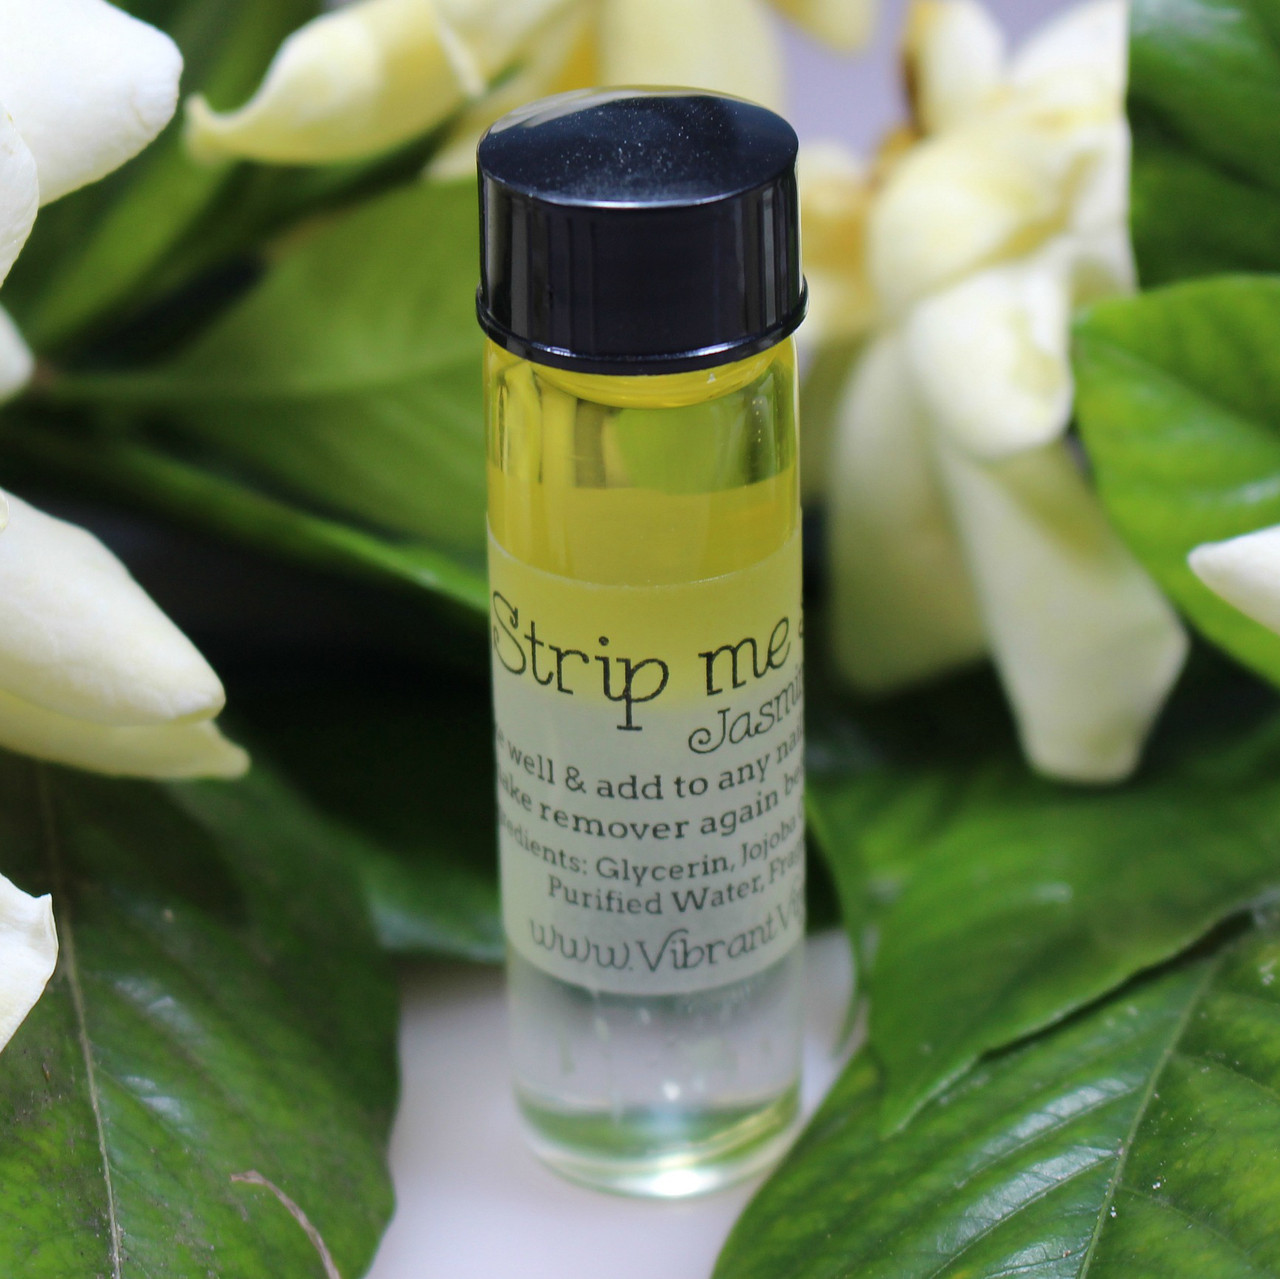 Strip Me Softly - Add to acetone or any nail polish remover